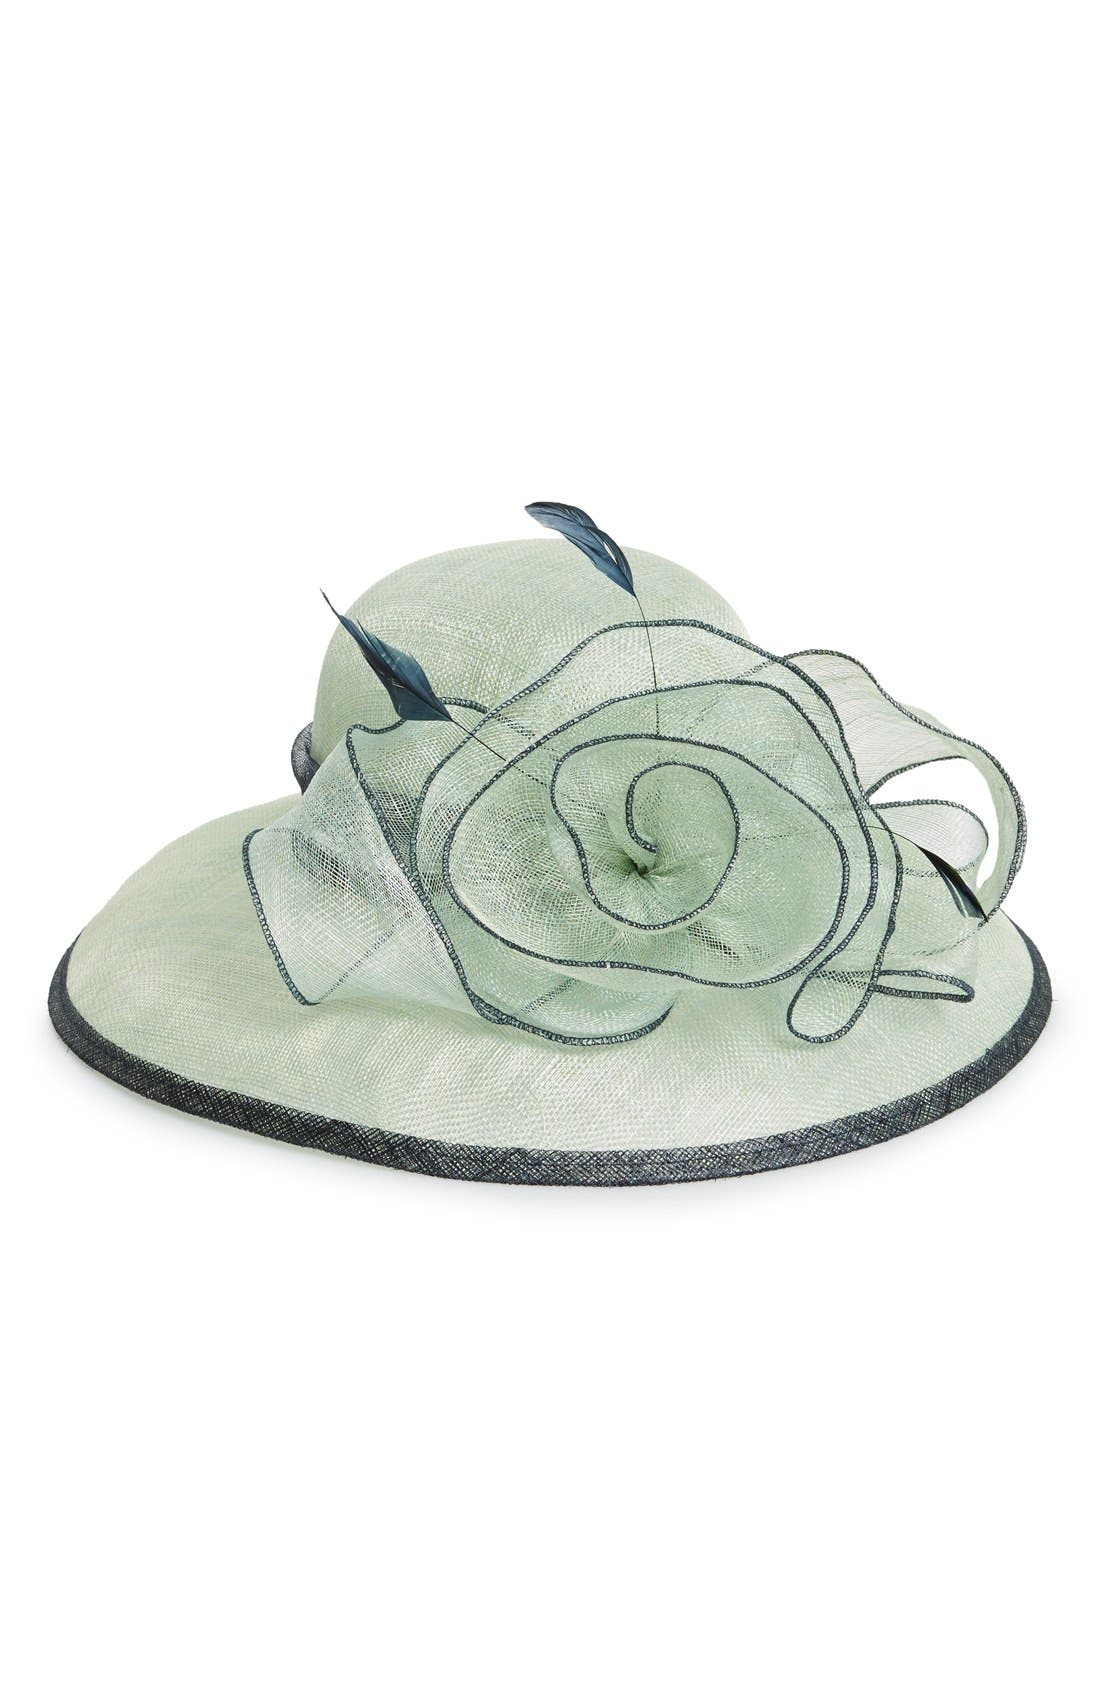 'To the Races' Floral Downbrim Hat,                             Main thumbnail 1, color,                             300